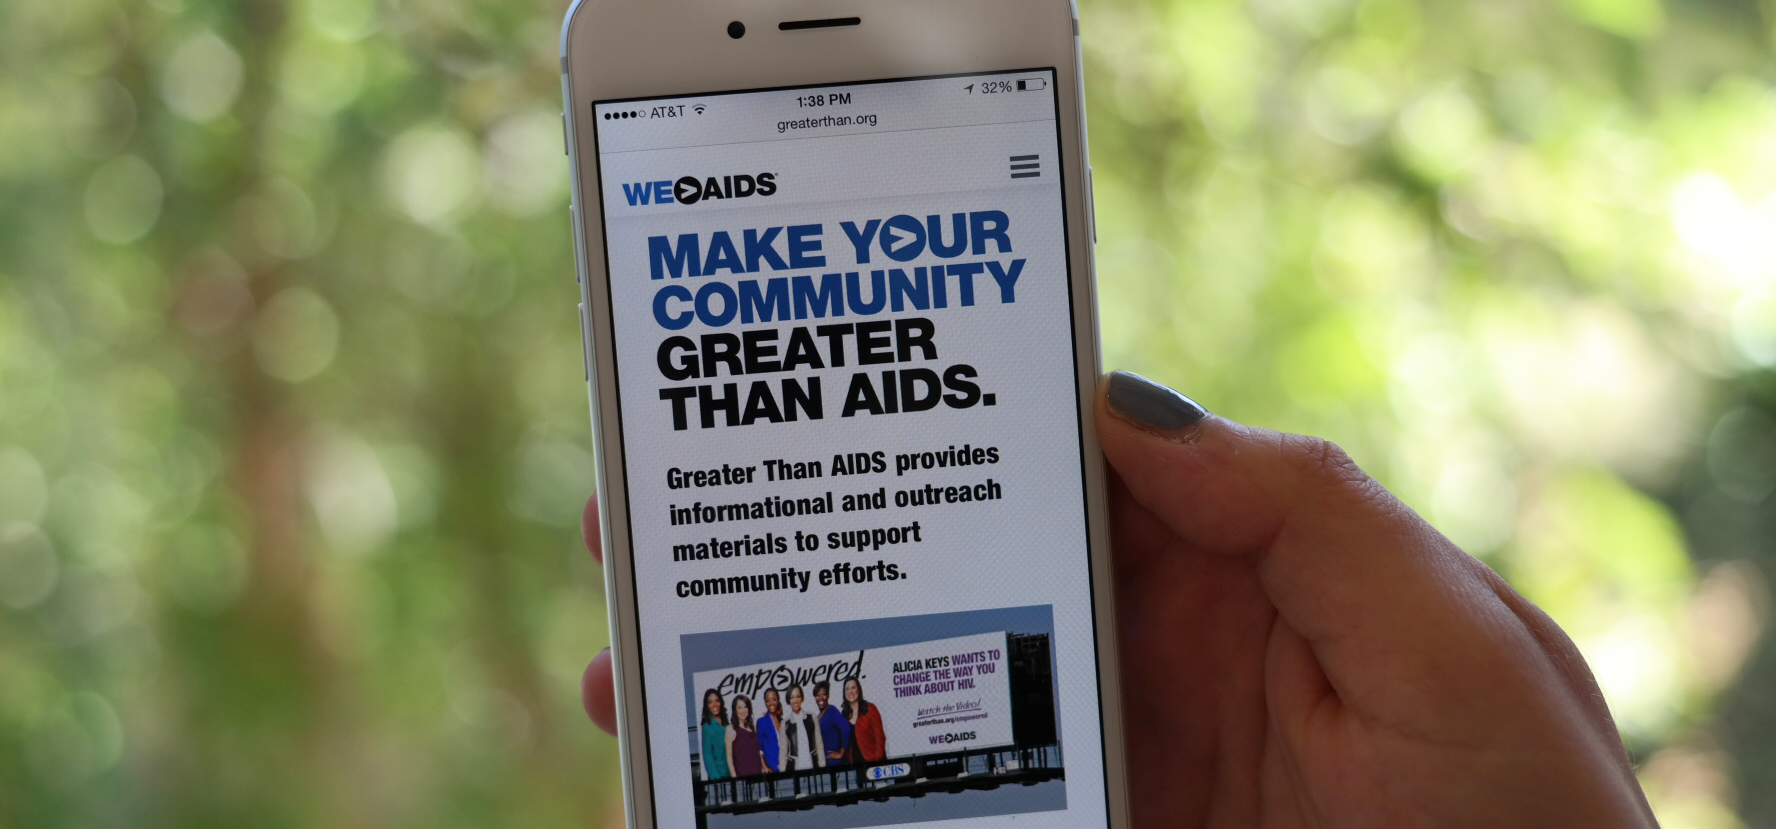 "Hand holding a smartphone displaying a graphic reading ""Make your community Greater Than AIDS"""